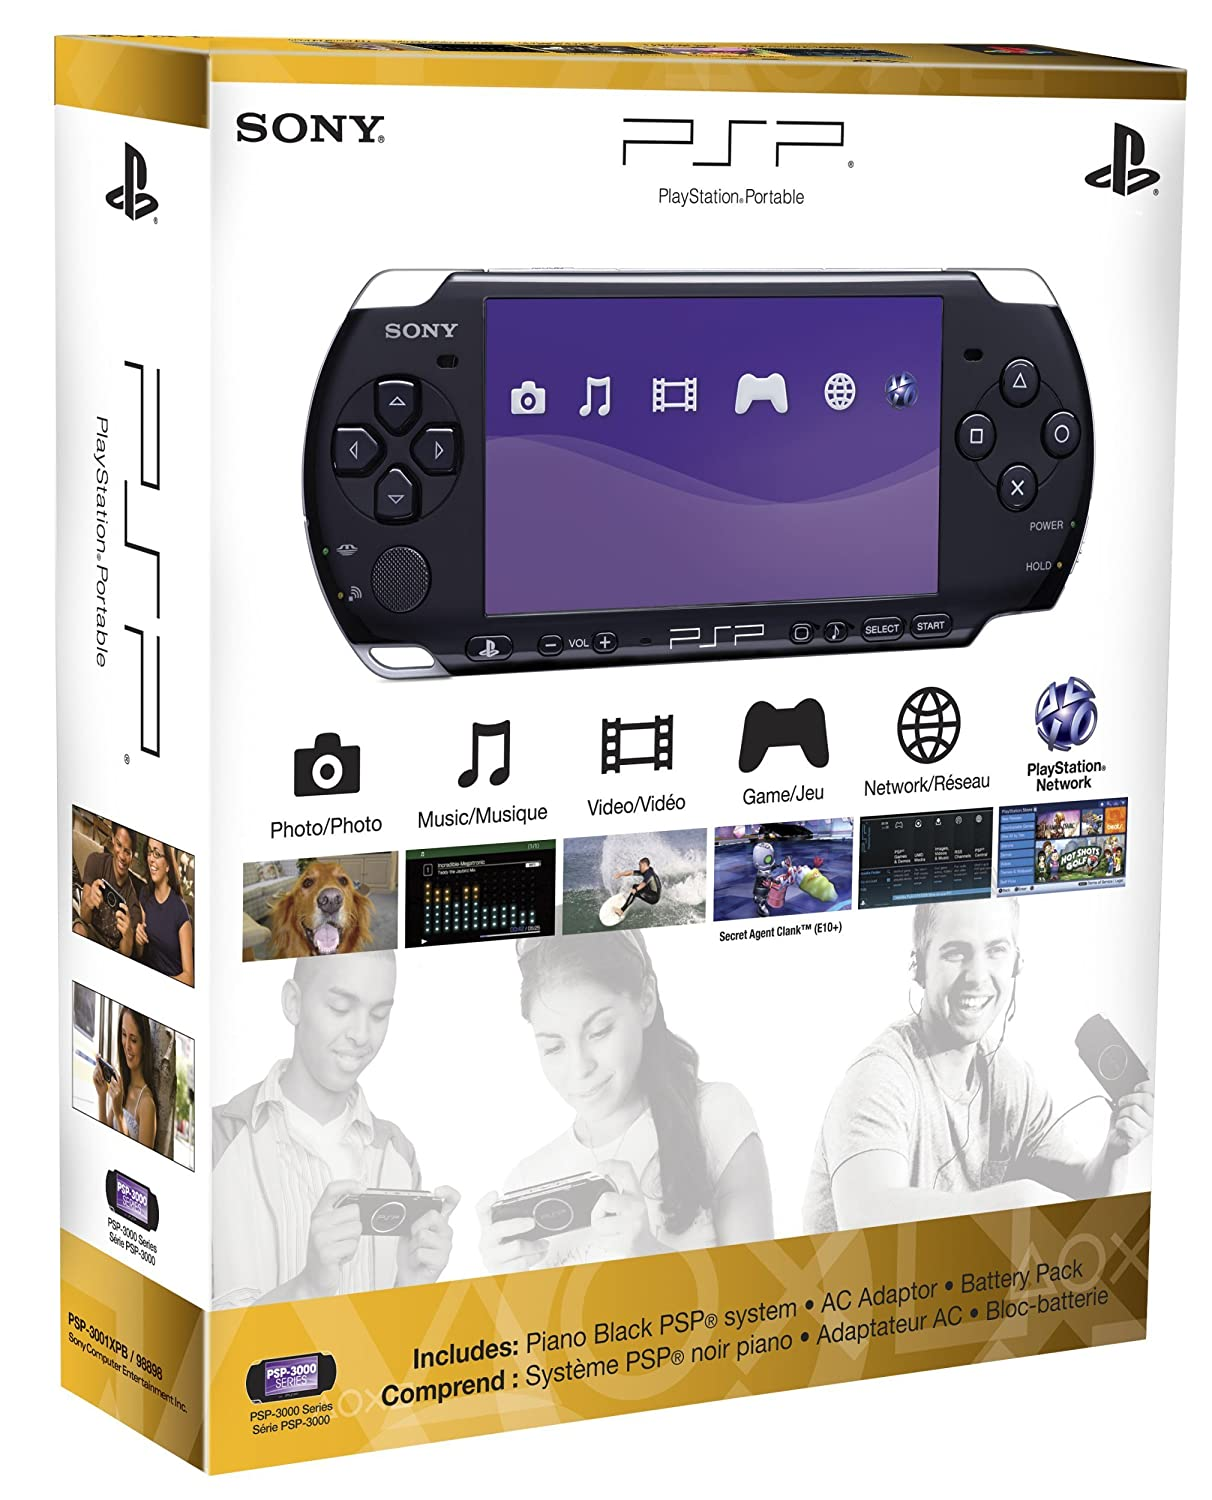 Playstation portable 3000 slim handheld console